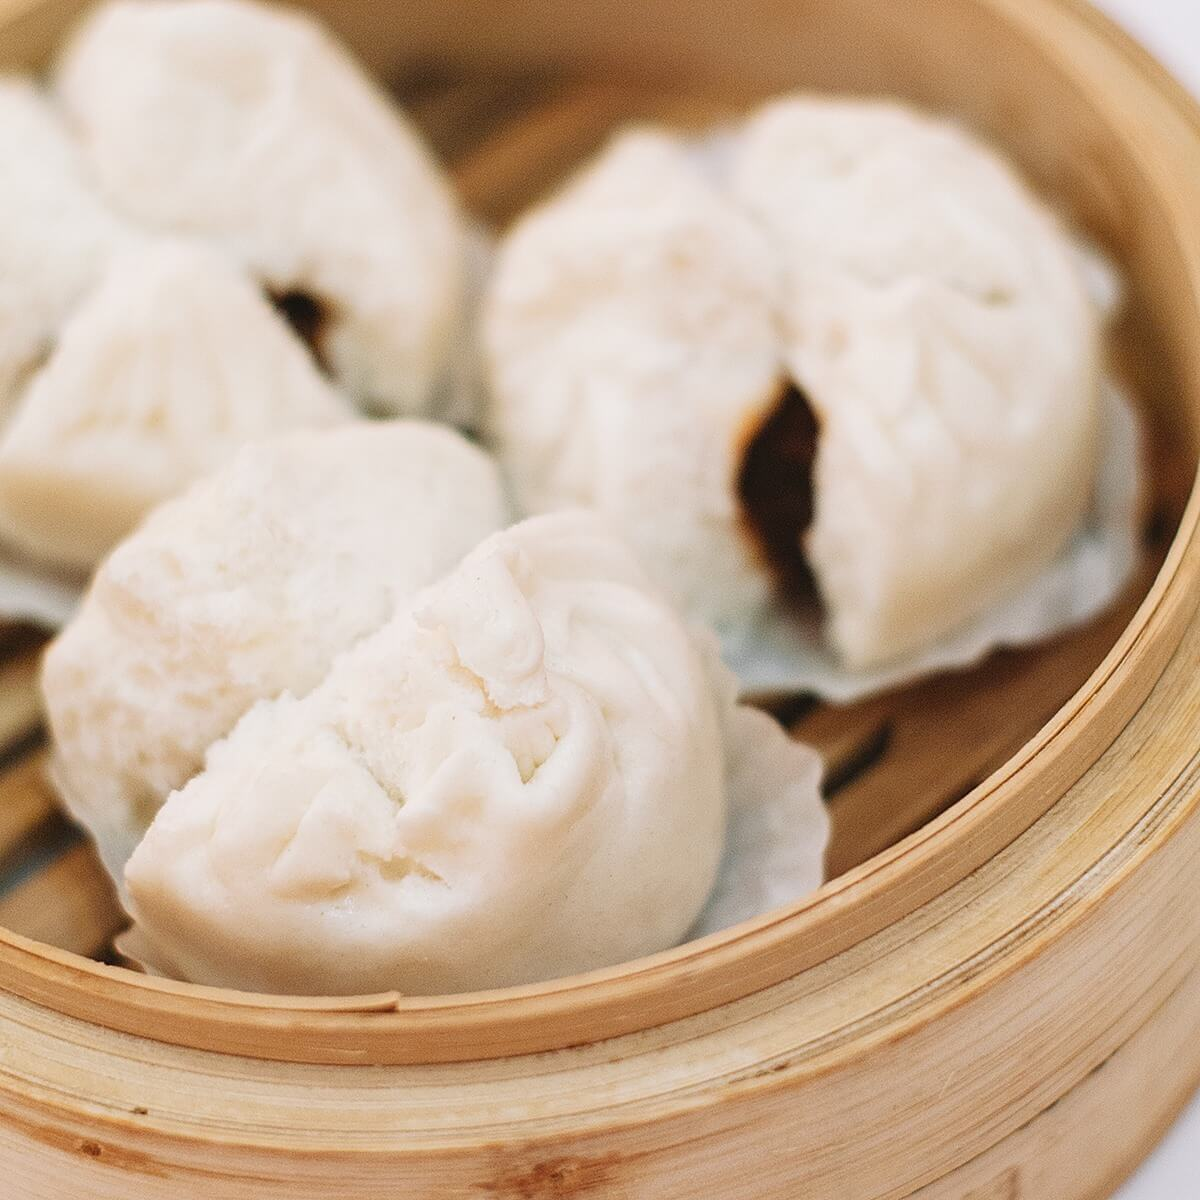 Curiosities Insider Interviews Jenna Rice Buddha Bodai Kosher Dumplings